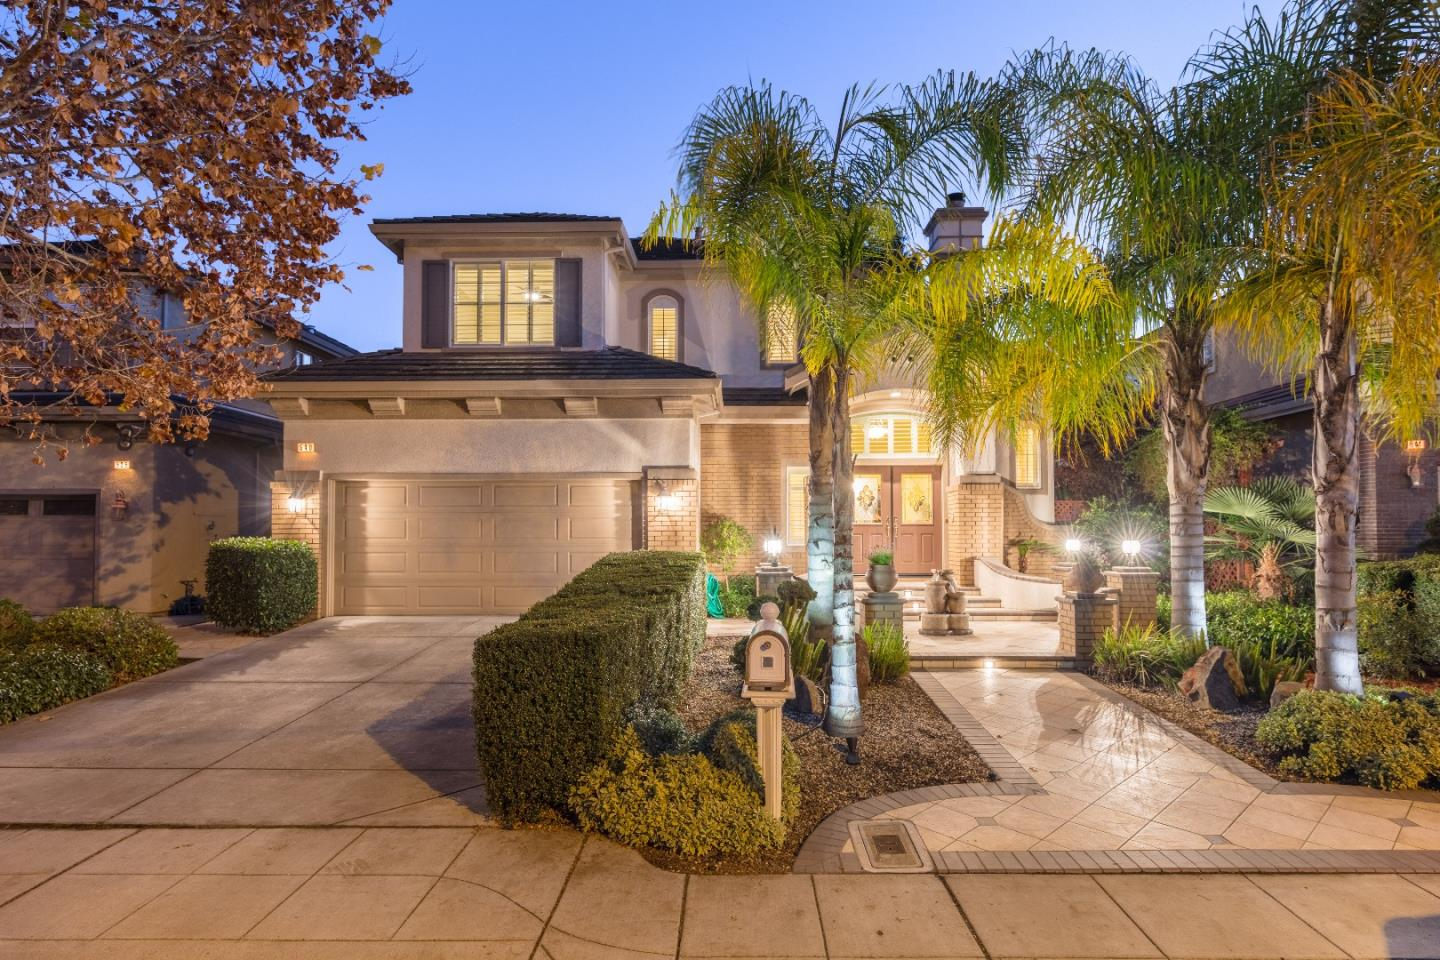 540 Hyannis Dr, Sunnyvale, Ca 94087 | Bailey Properties